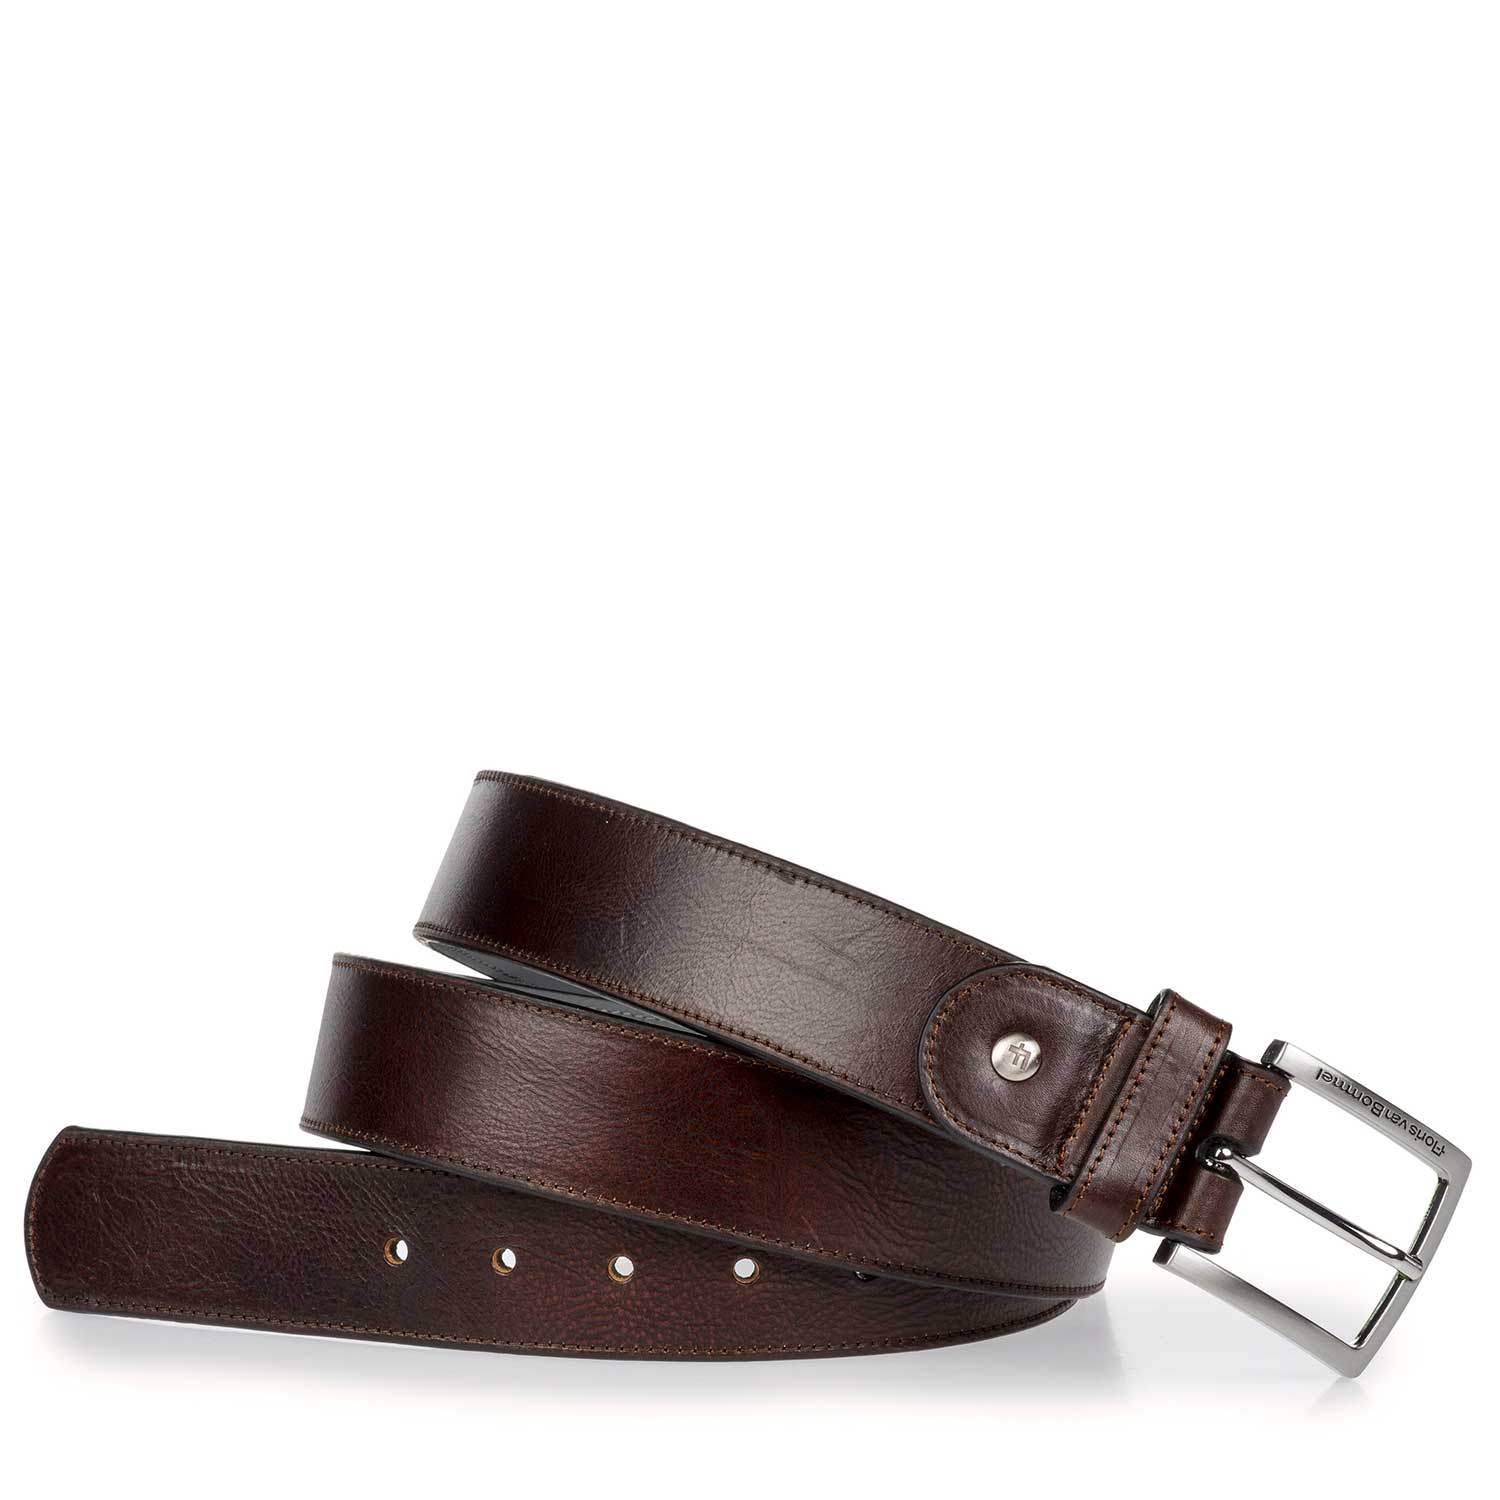 75166/02 - Dark brown calf's leather belt